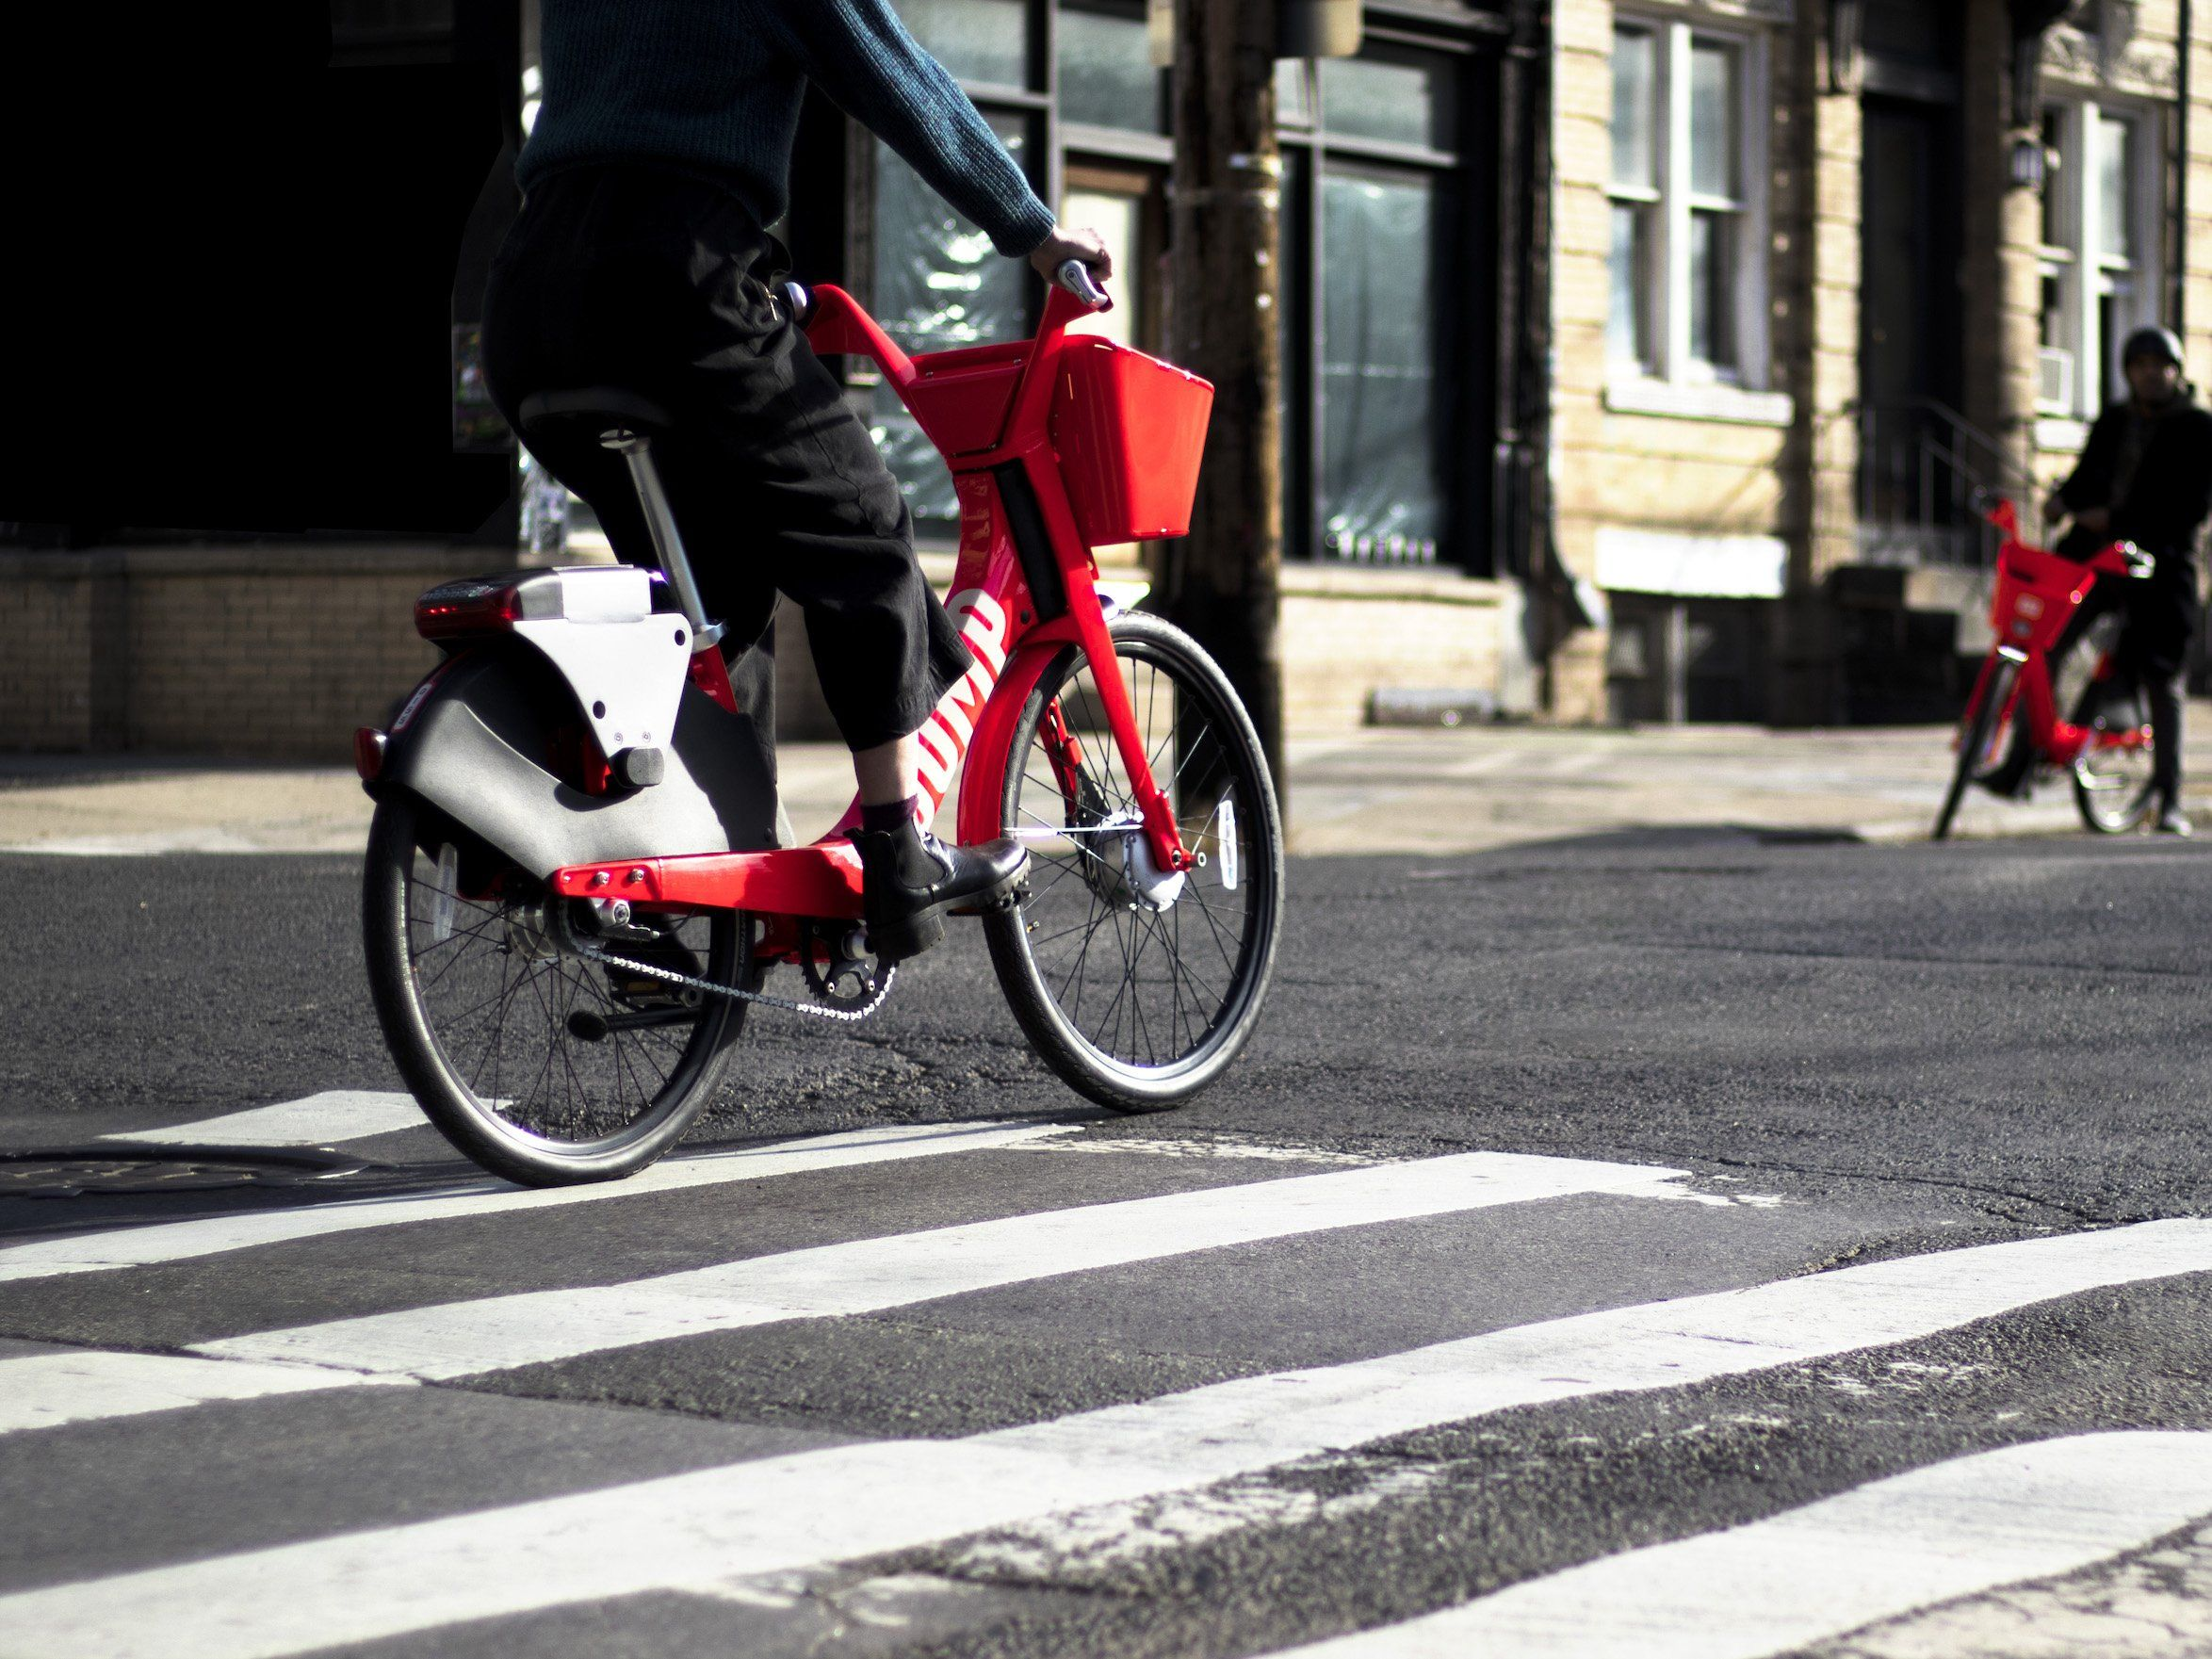 Uber S Bike And Scooter Company Appears To Be Expanding Around The